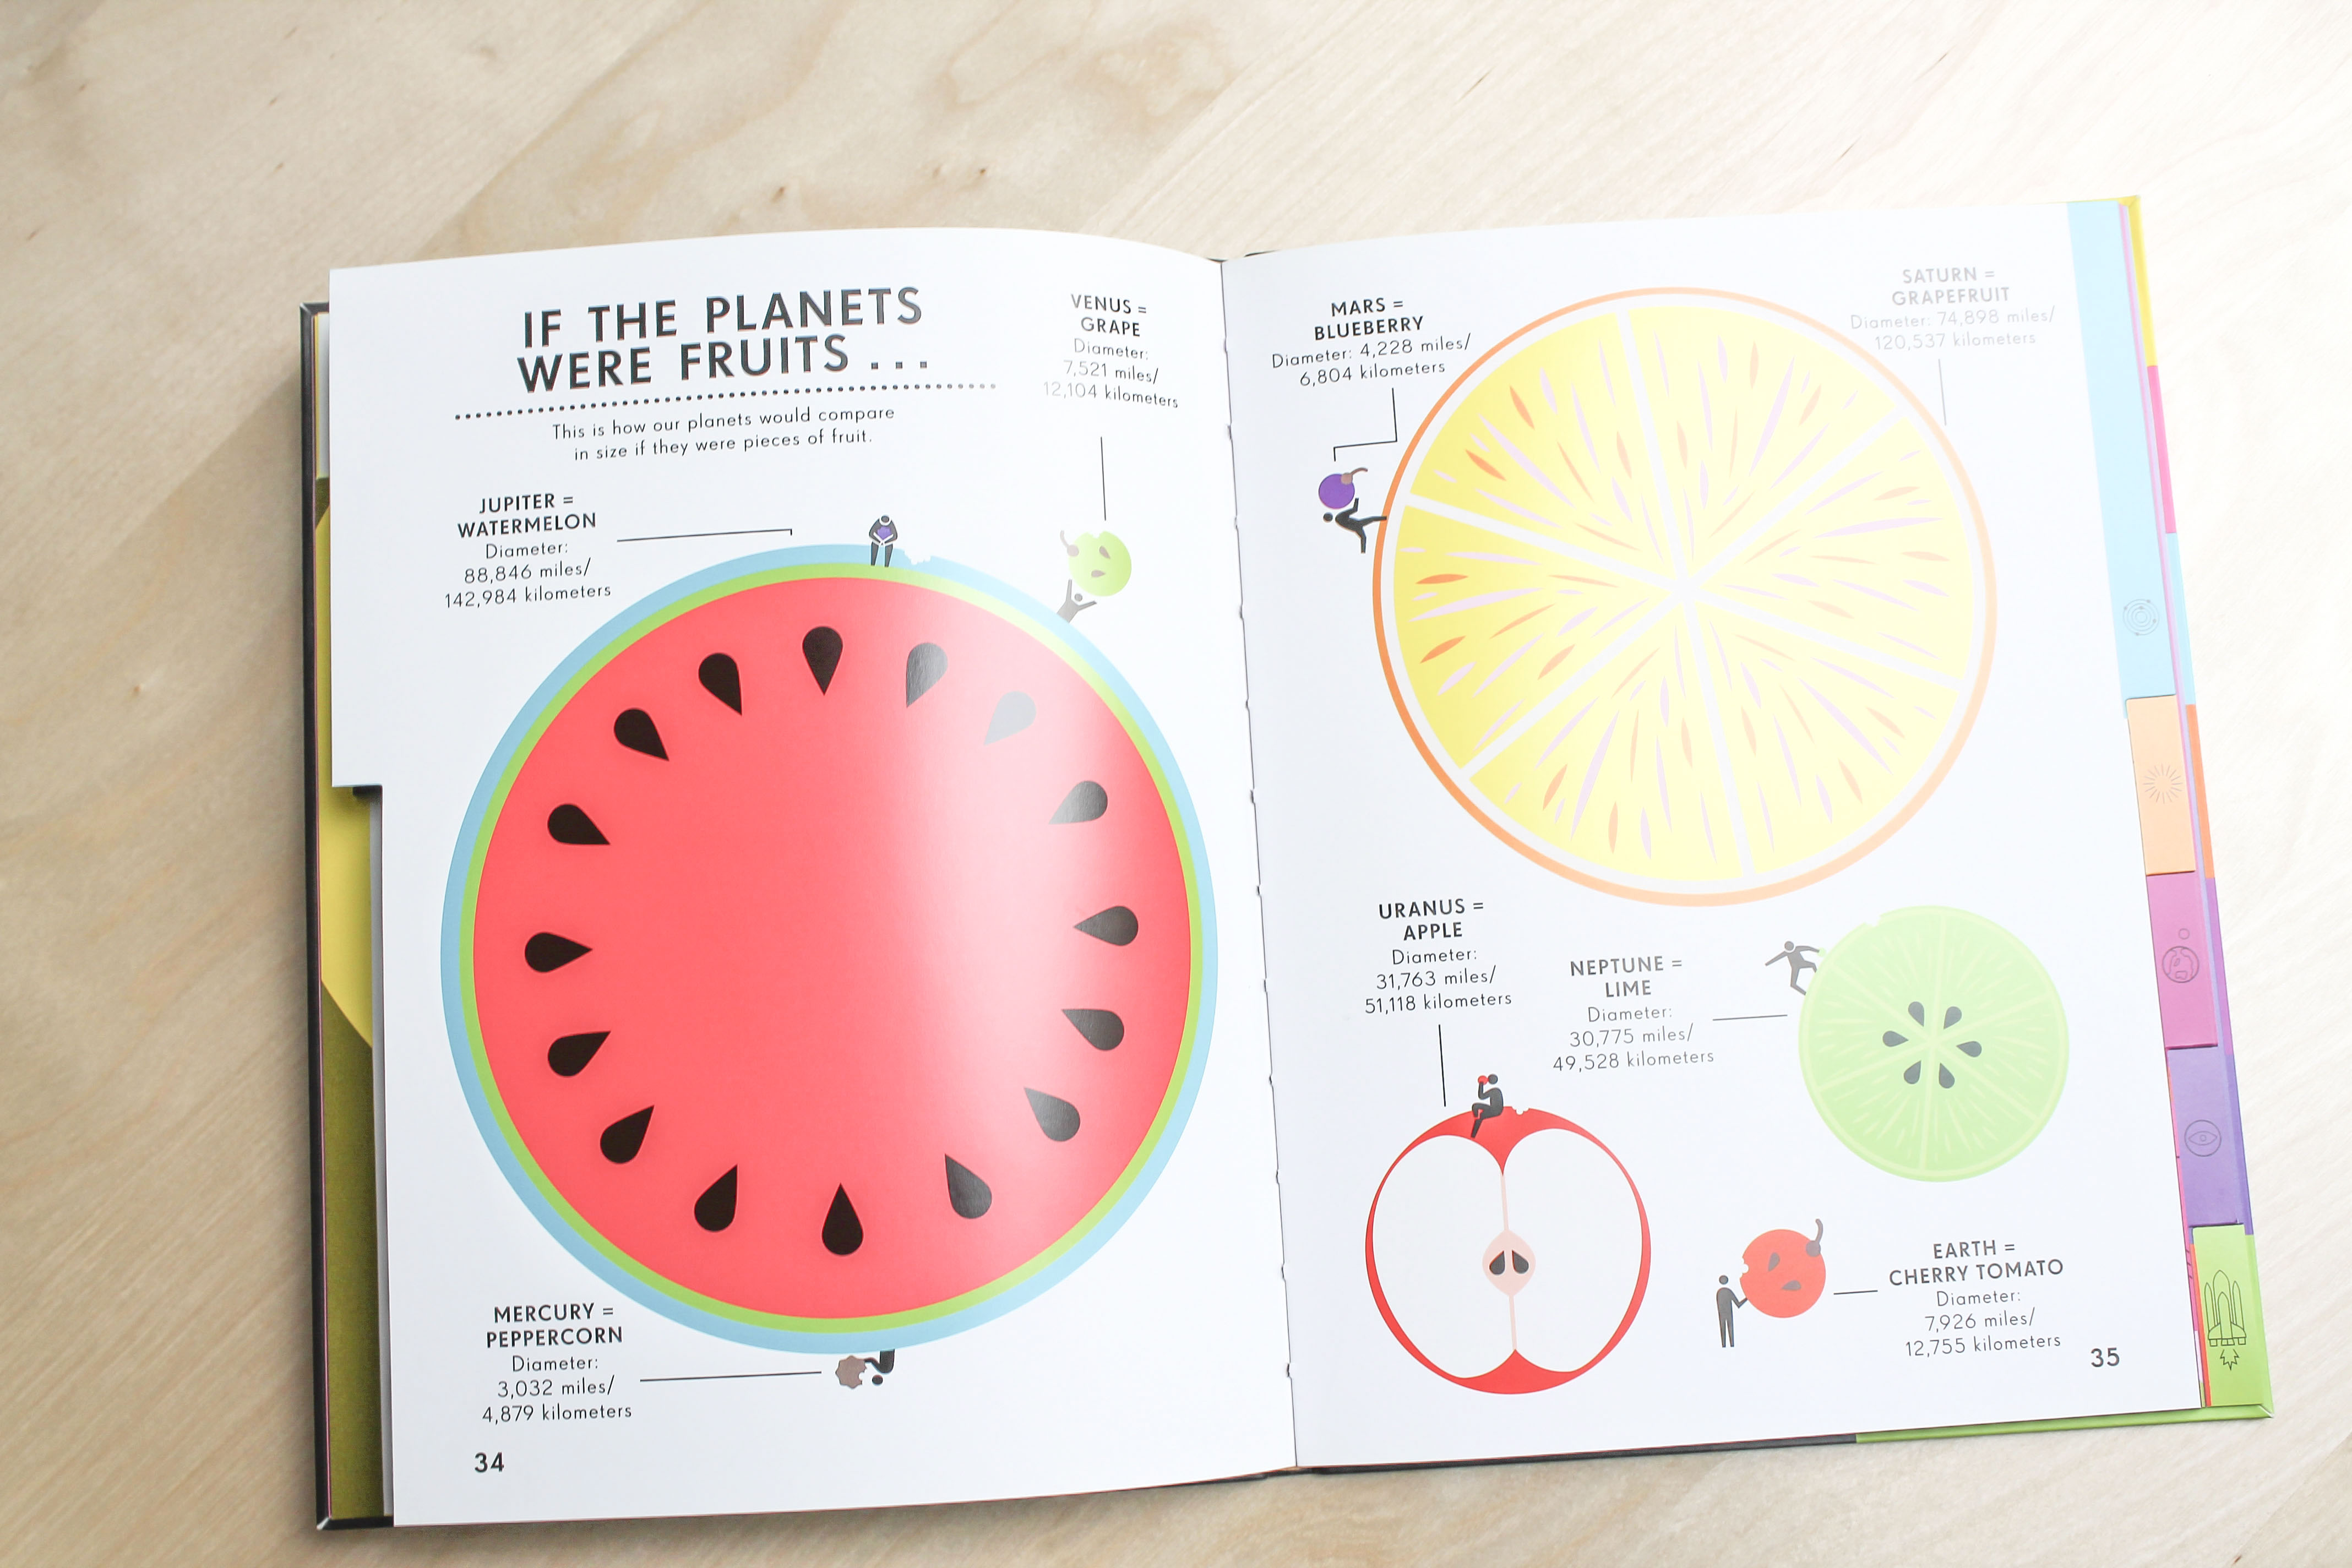 Interior picture of space infographic book